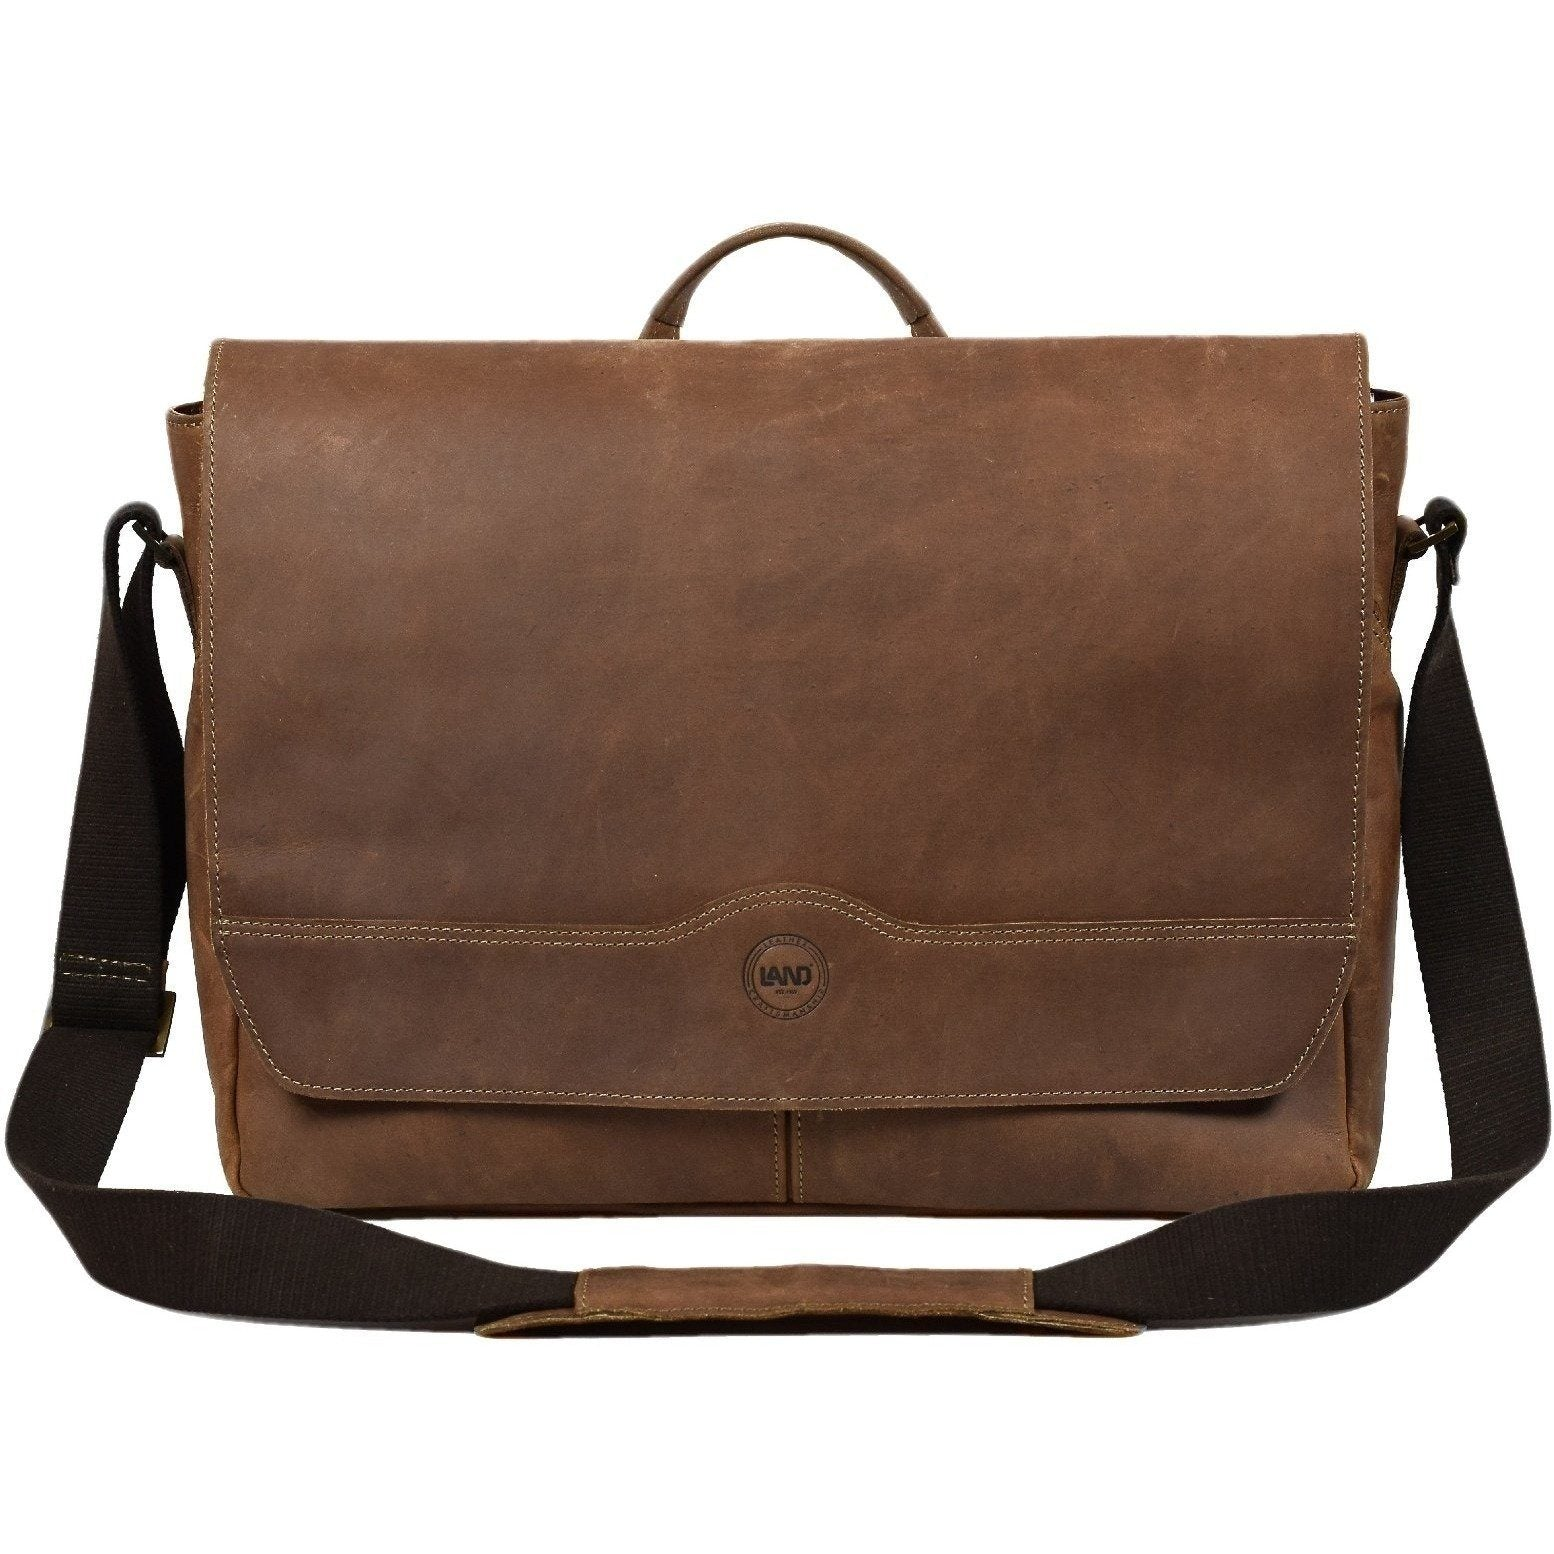 Terra Logan Messenger, Crossover Bag | LAND Leather